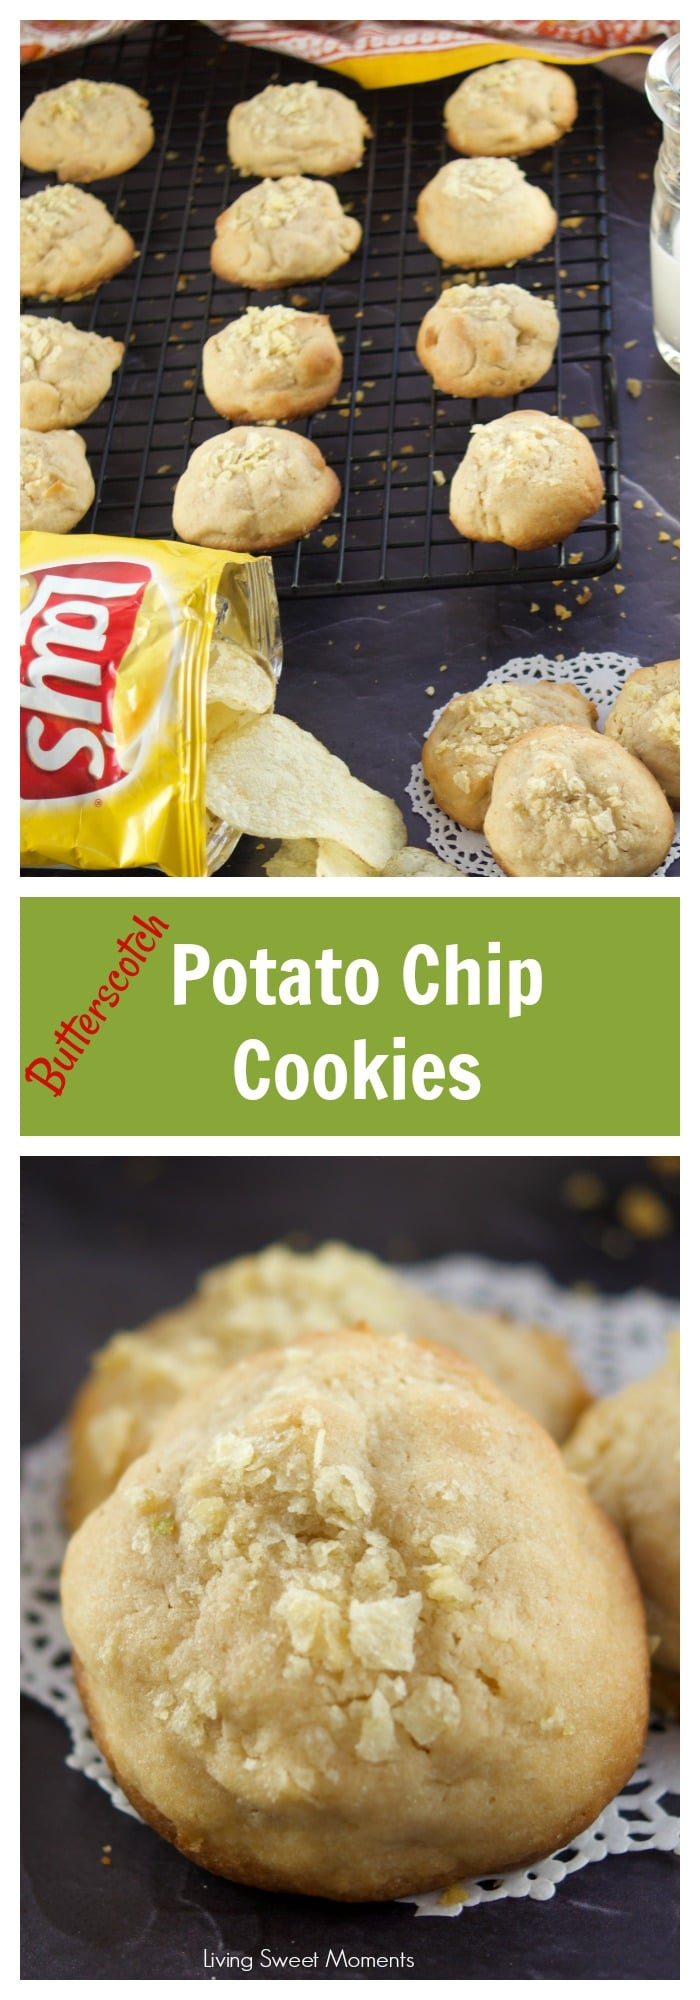 These delicious Potato Chip Cookies are sweet and salty at the same time with a nice butterscotch flavor on the background. Perfect as a snack, or on the go for road trips this summer. AD